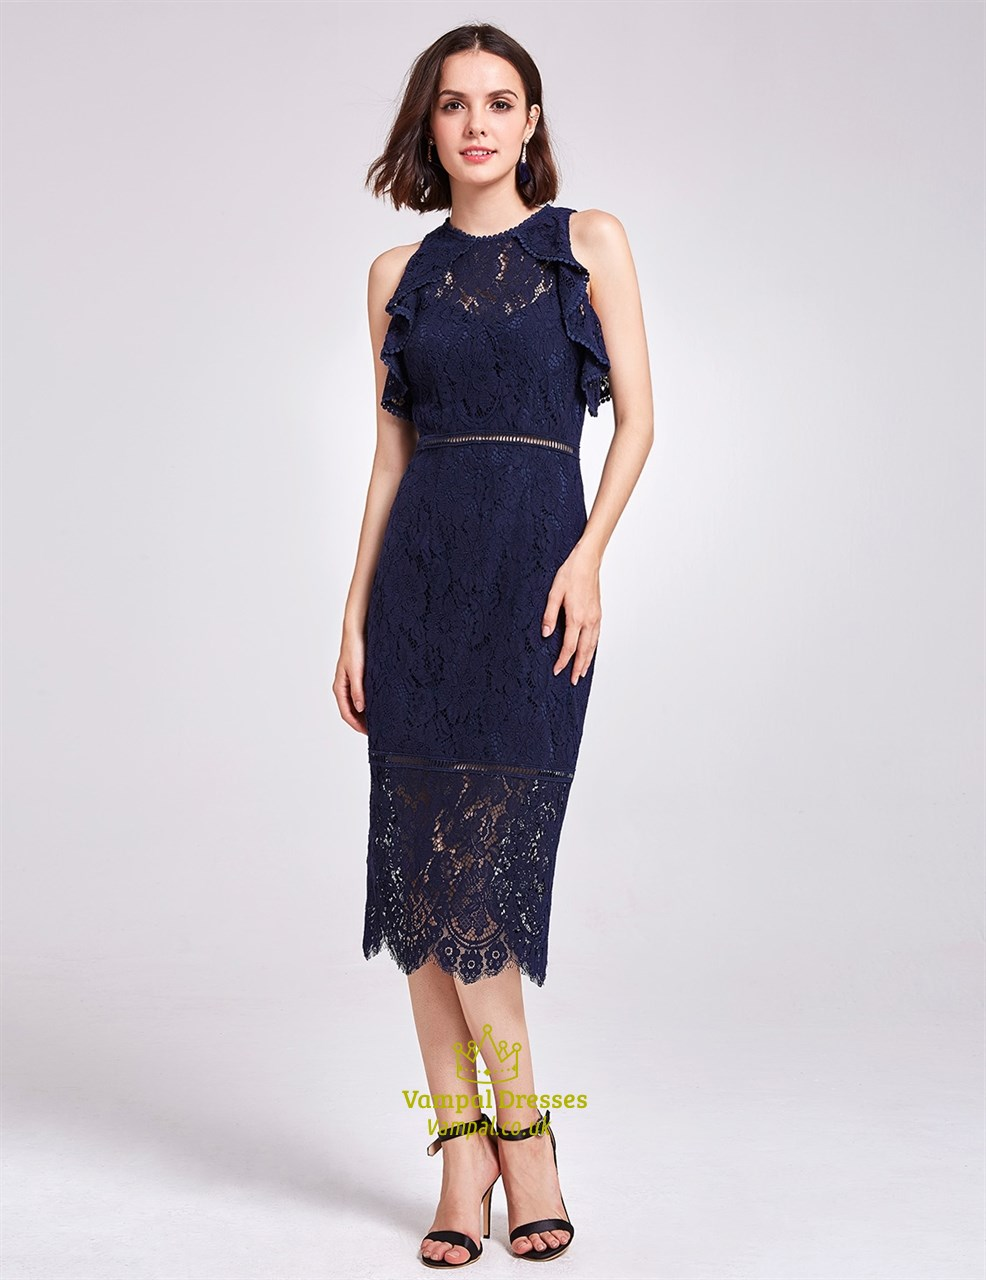 a80dfa5060da Navy Blue Sleeveless Tea Length Sheath Lace Cocktail Dress With Split SKU  -FS2932